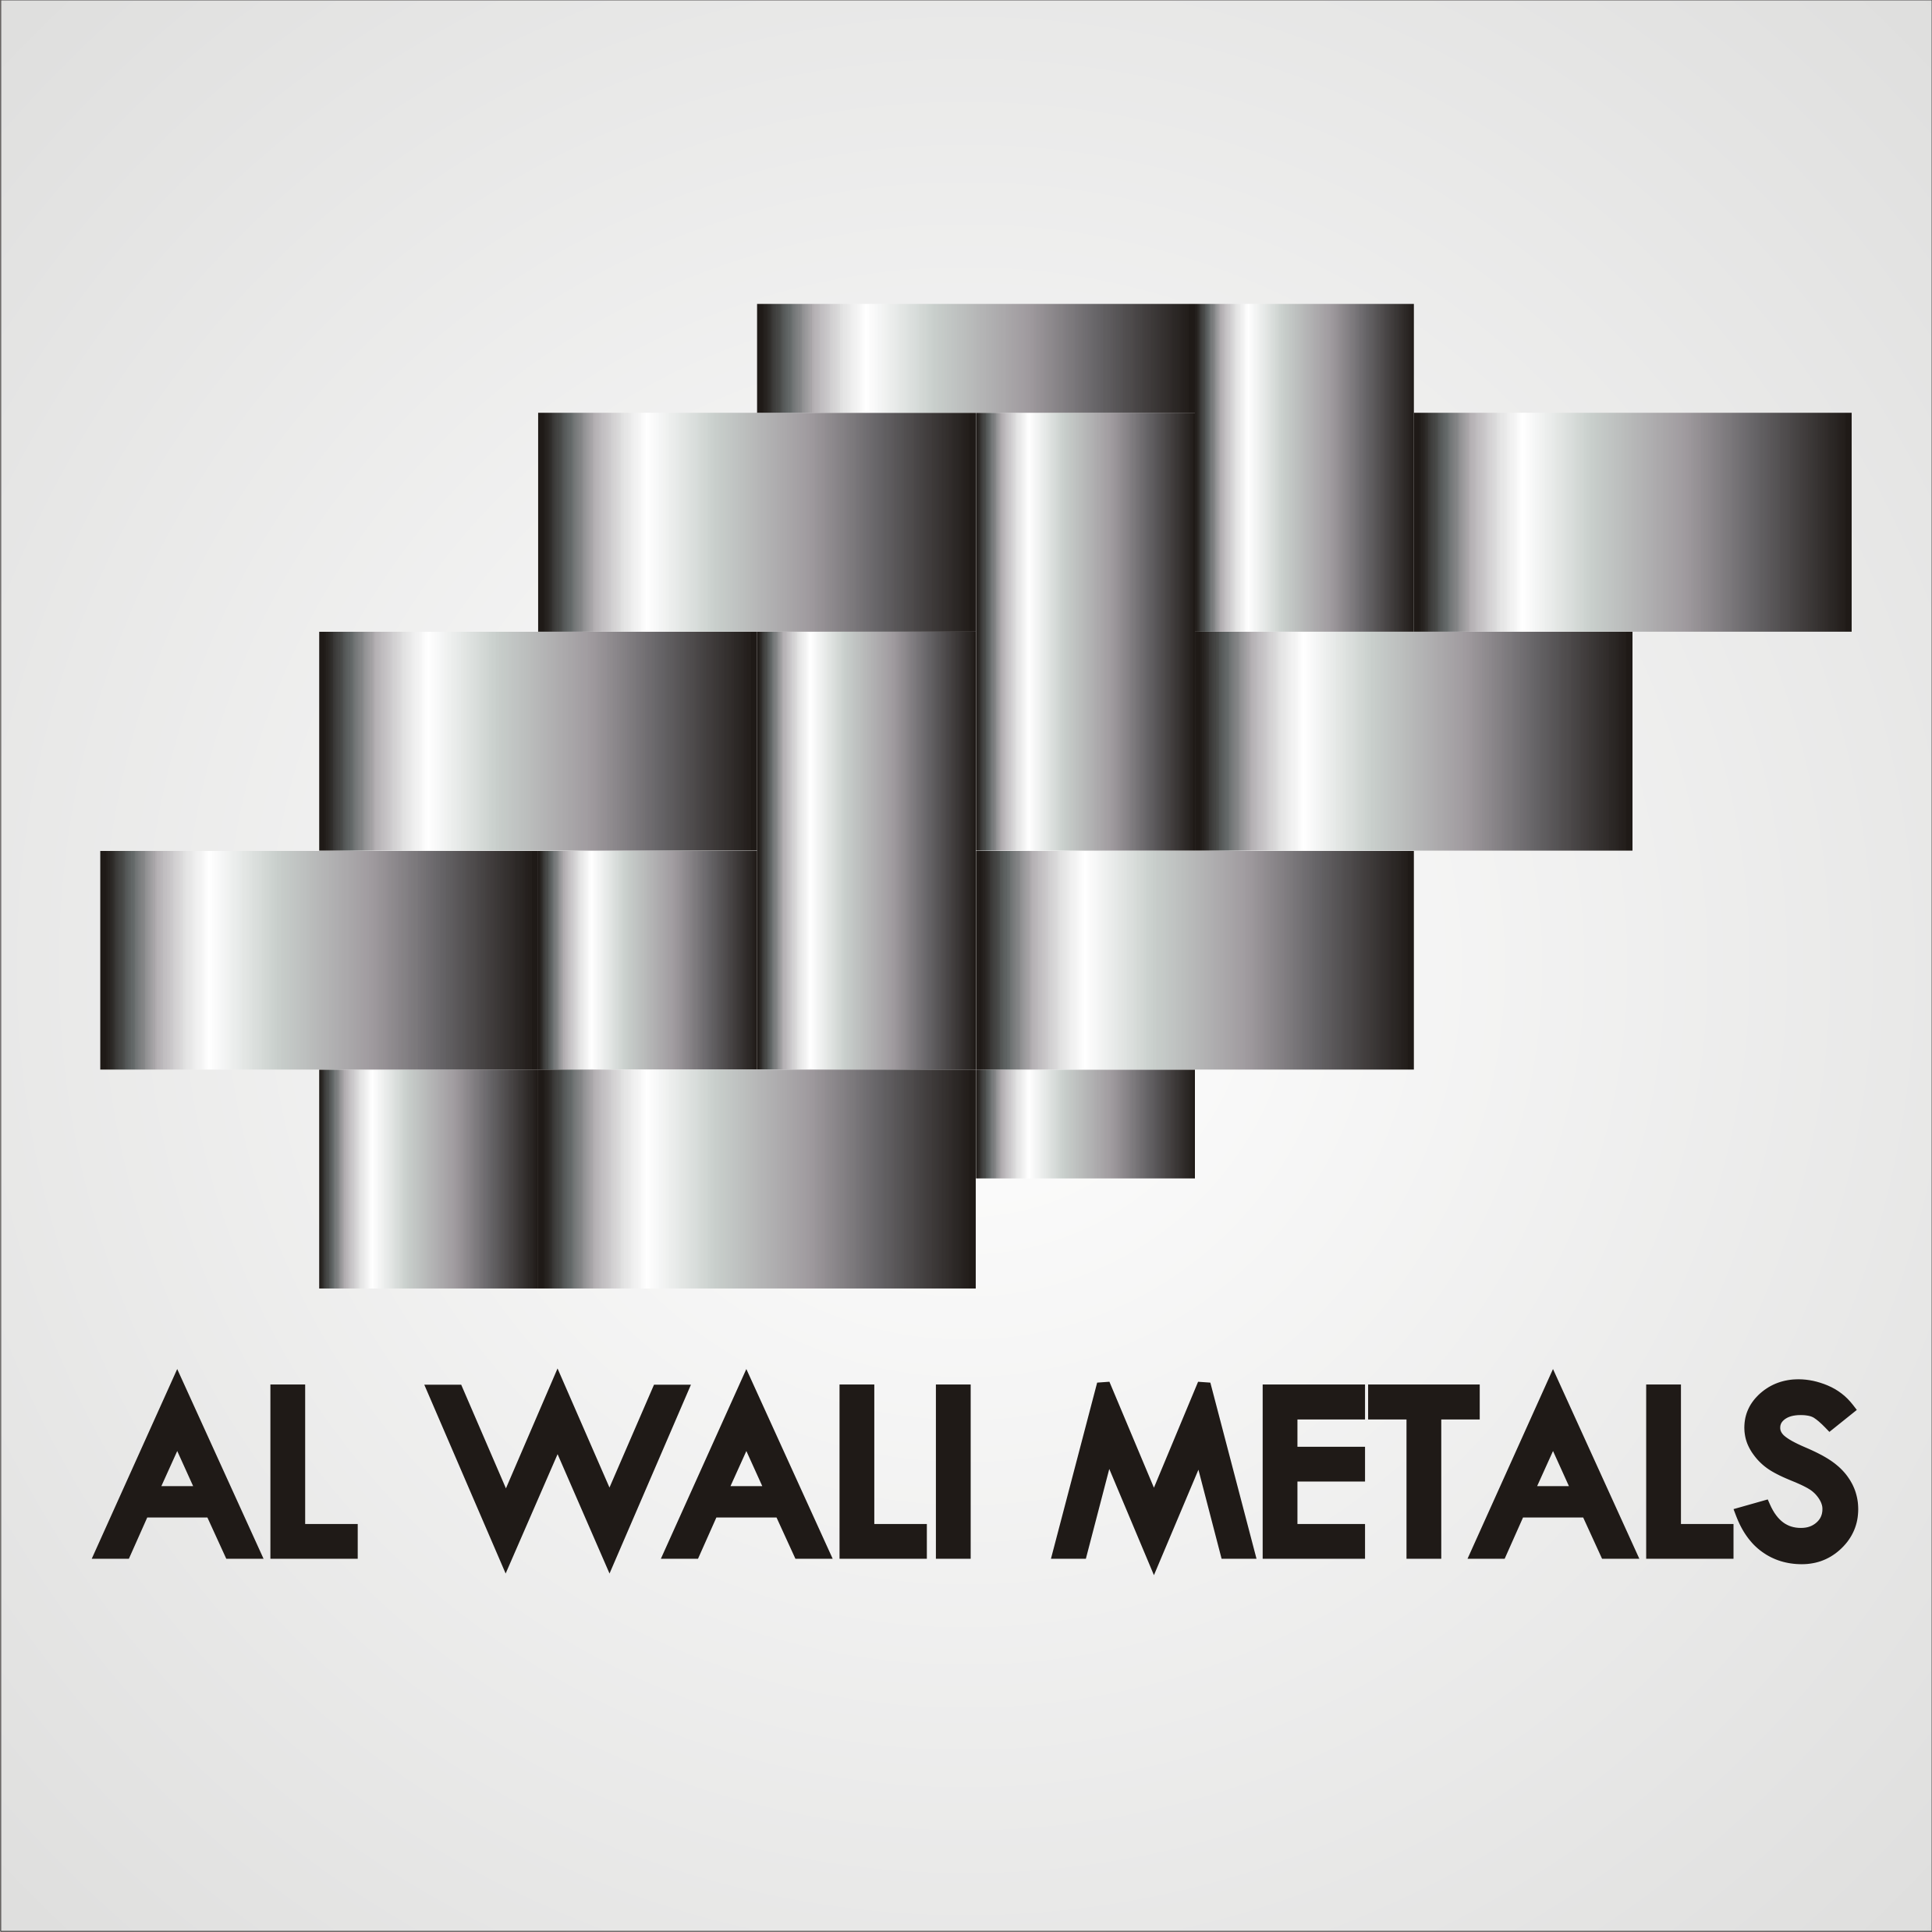 Logo Design by Private User - Entry No. 118 in the Logo Design Contest Inspiring Logo Design for Al Wali Metals.